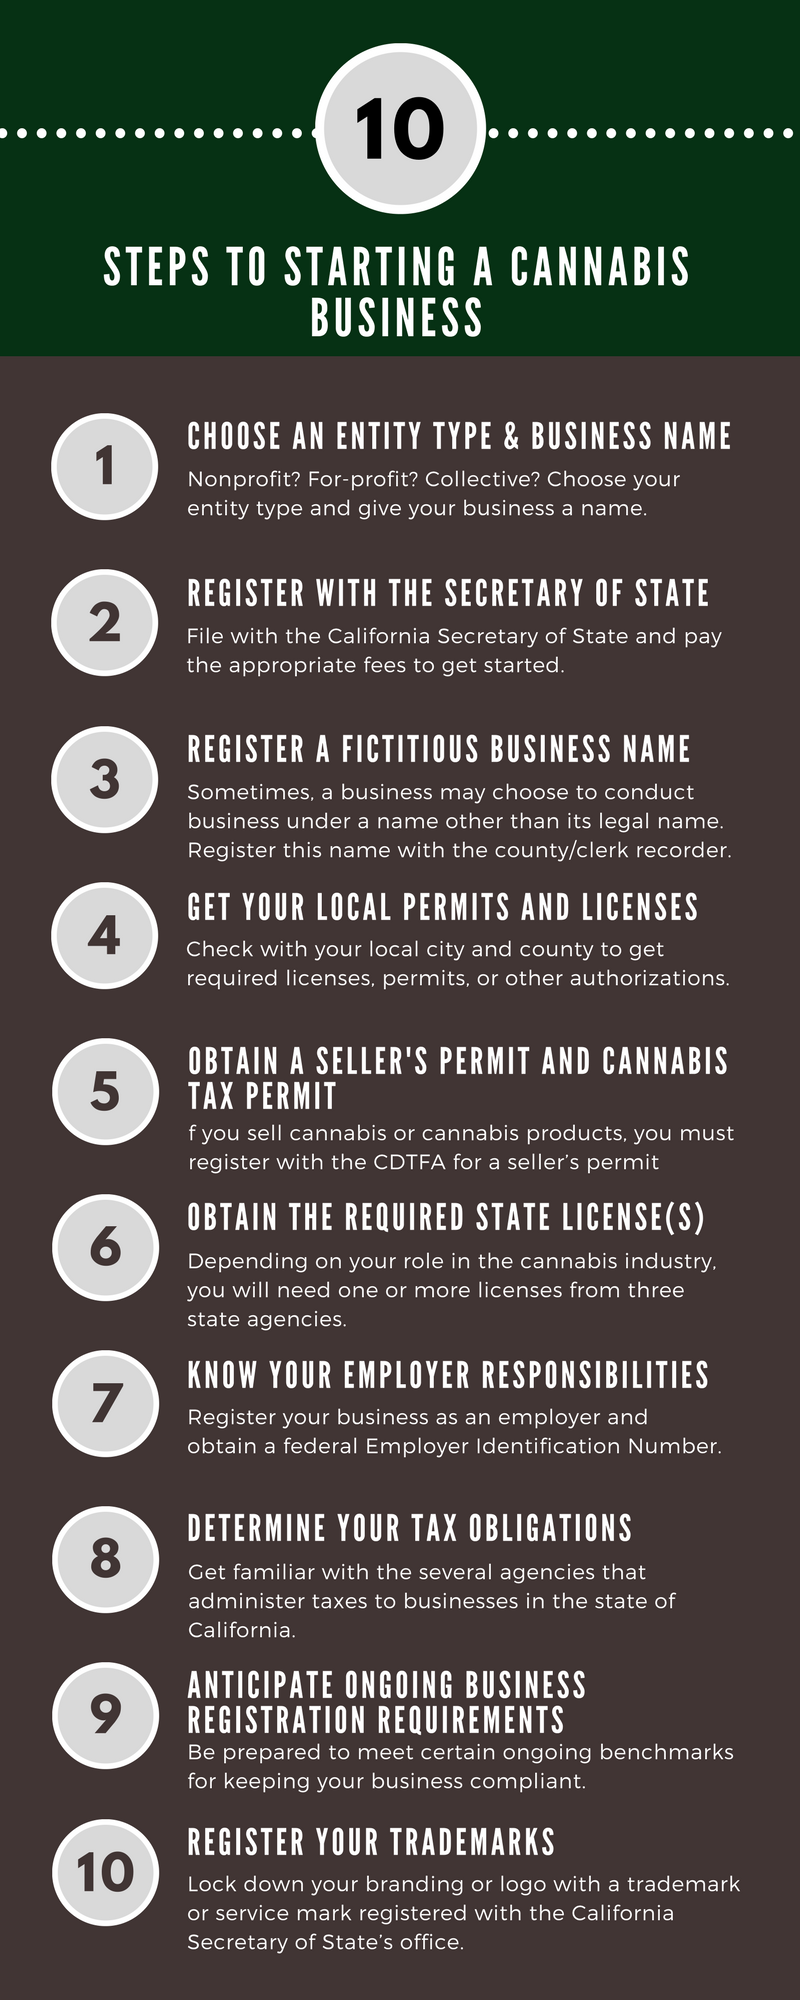 how to get cpa license in california